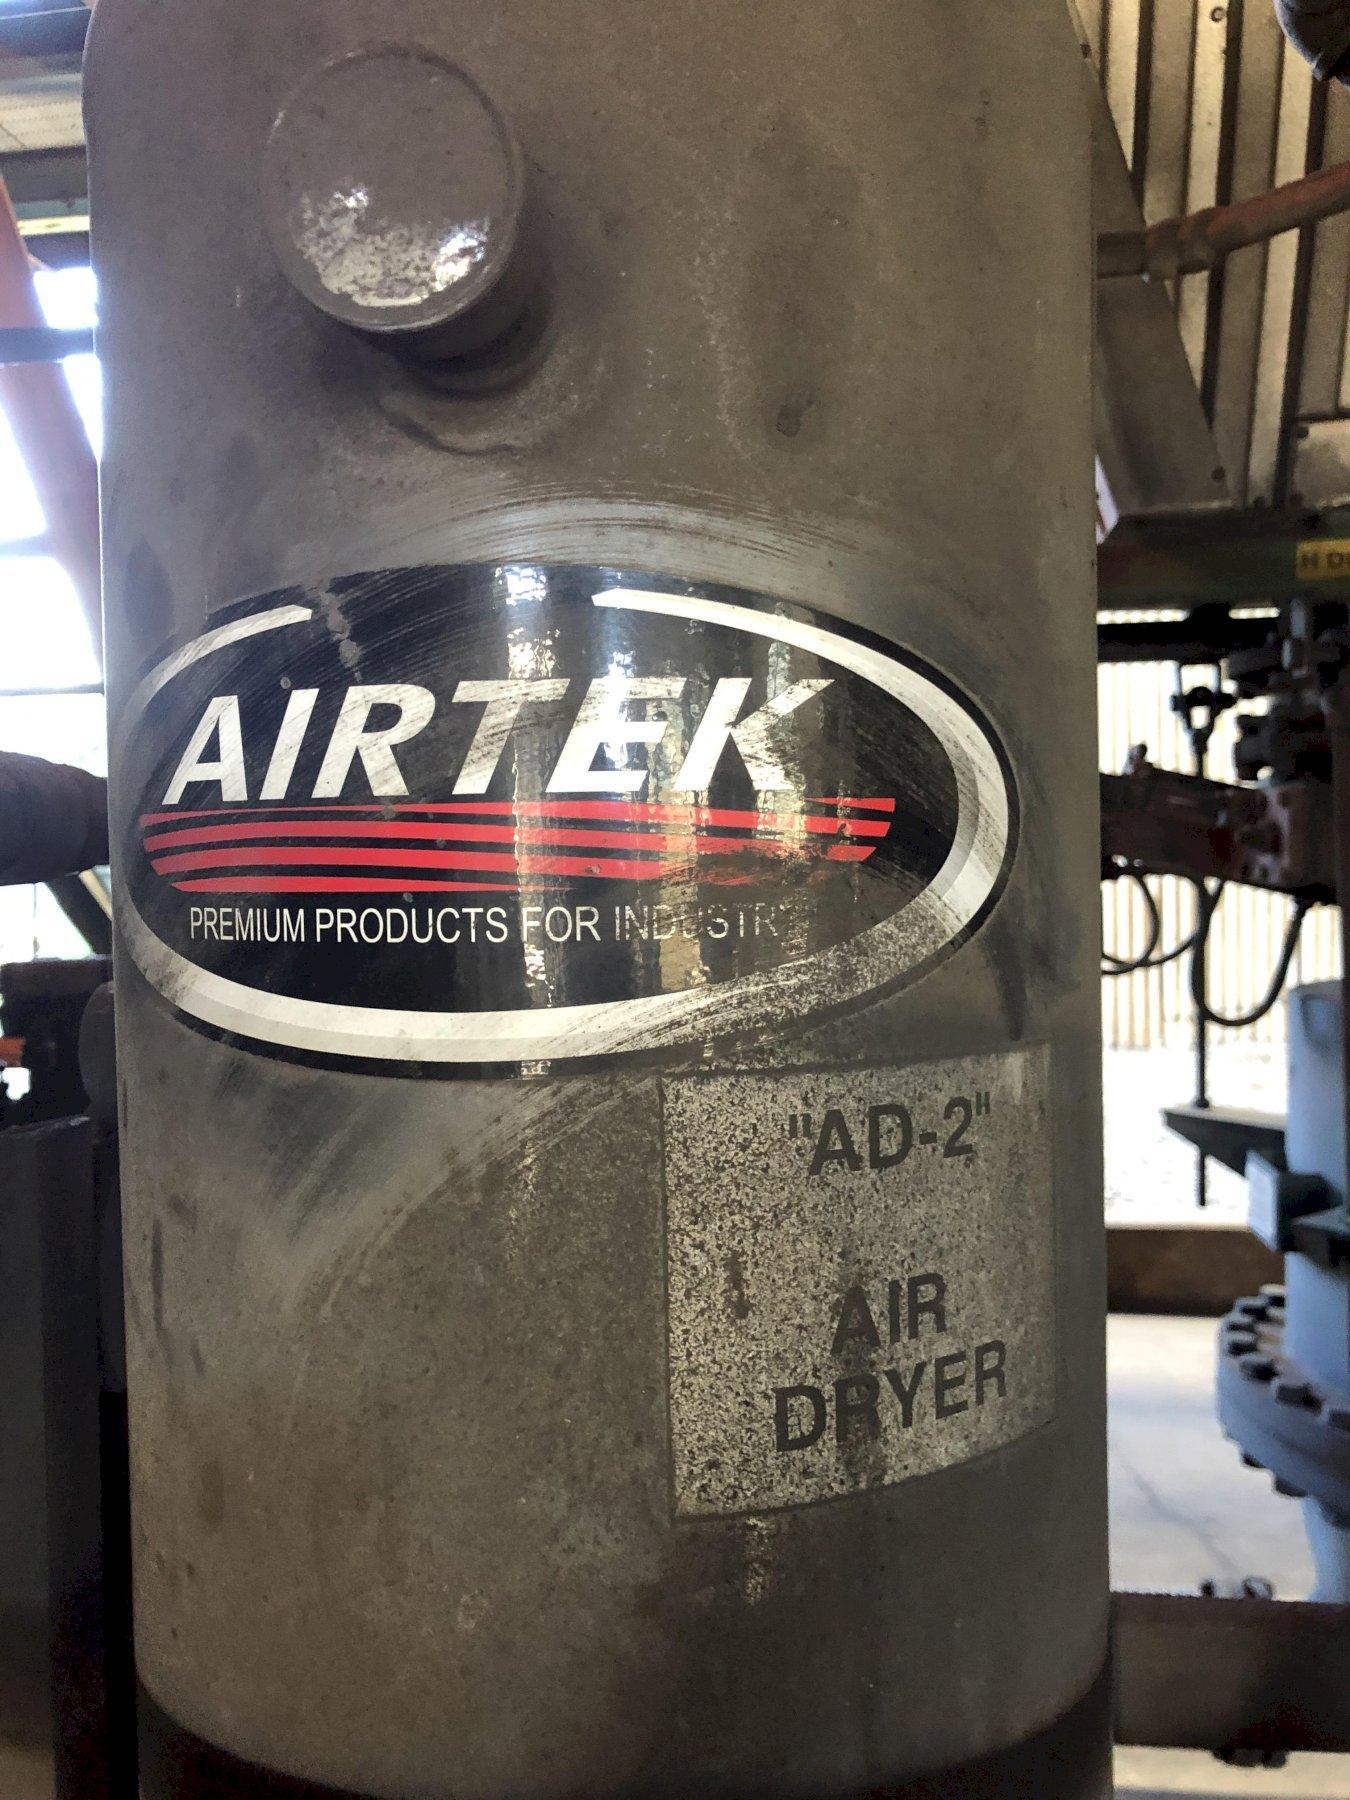 Airtek heatless desiccant air dryer model tw 250 s/n tyo3284-08d rated at 150 scfm and air receiver 3' x 8' tall